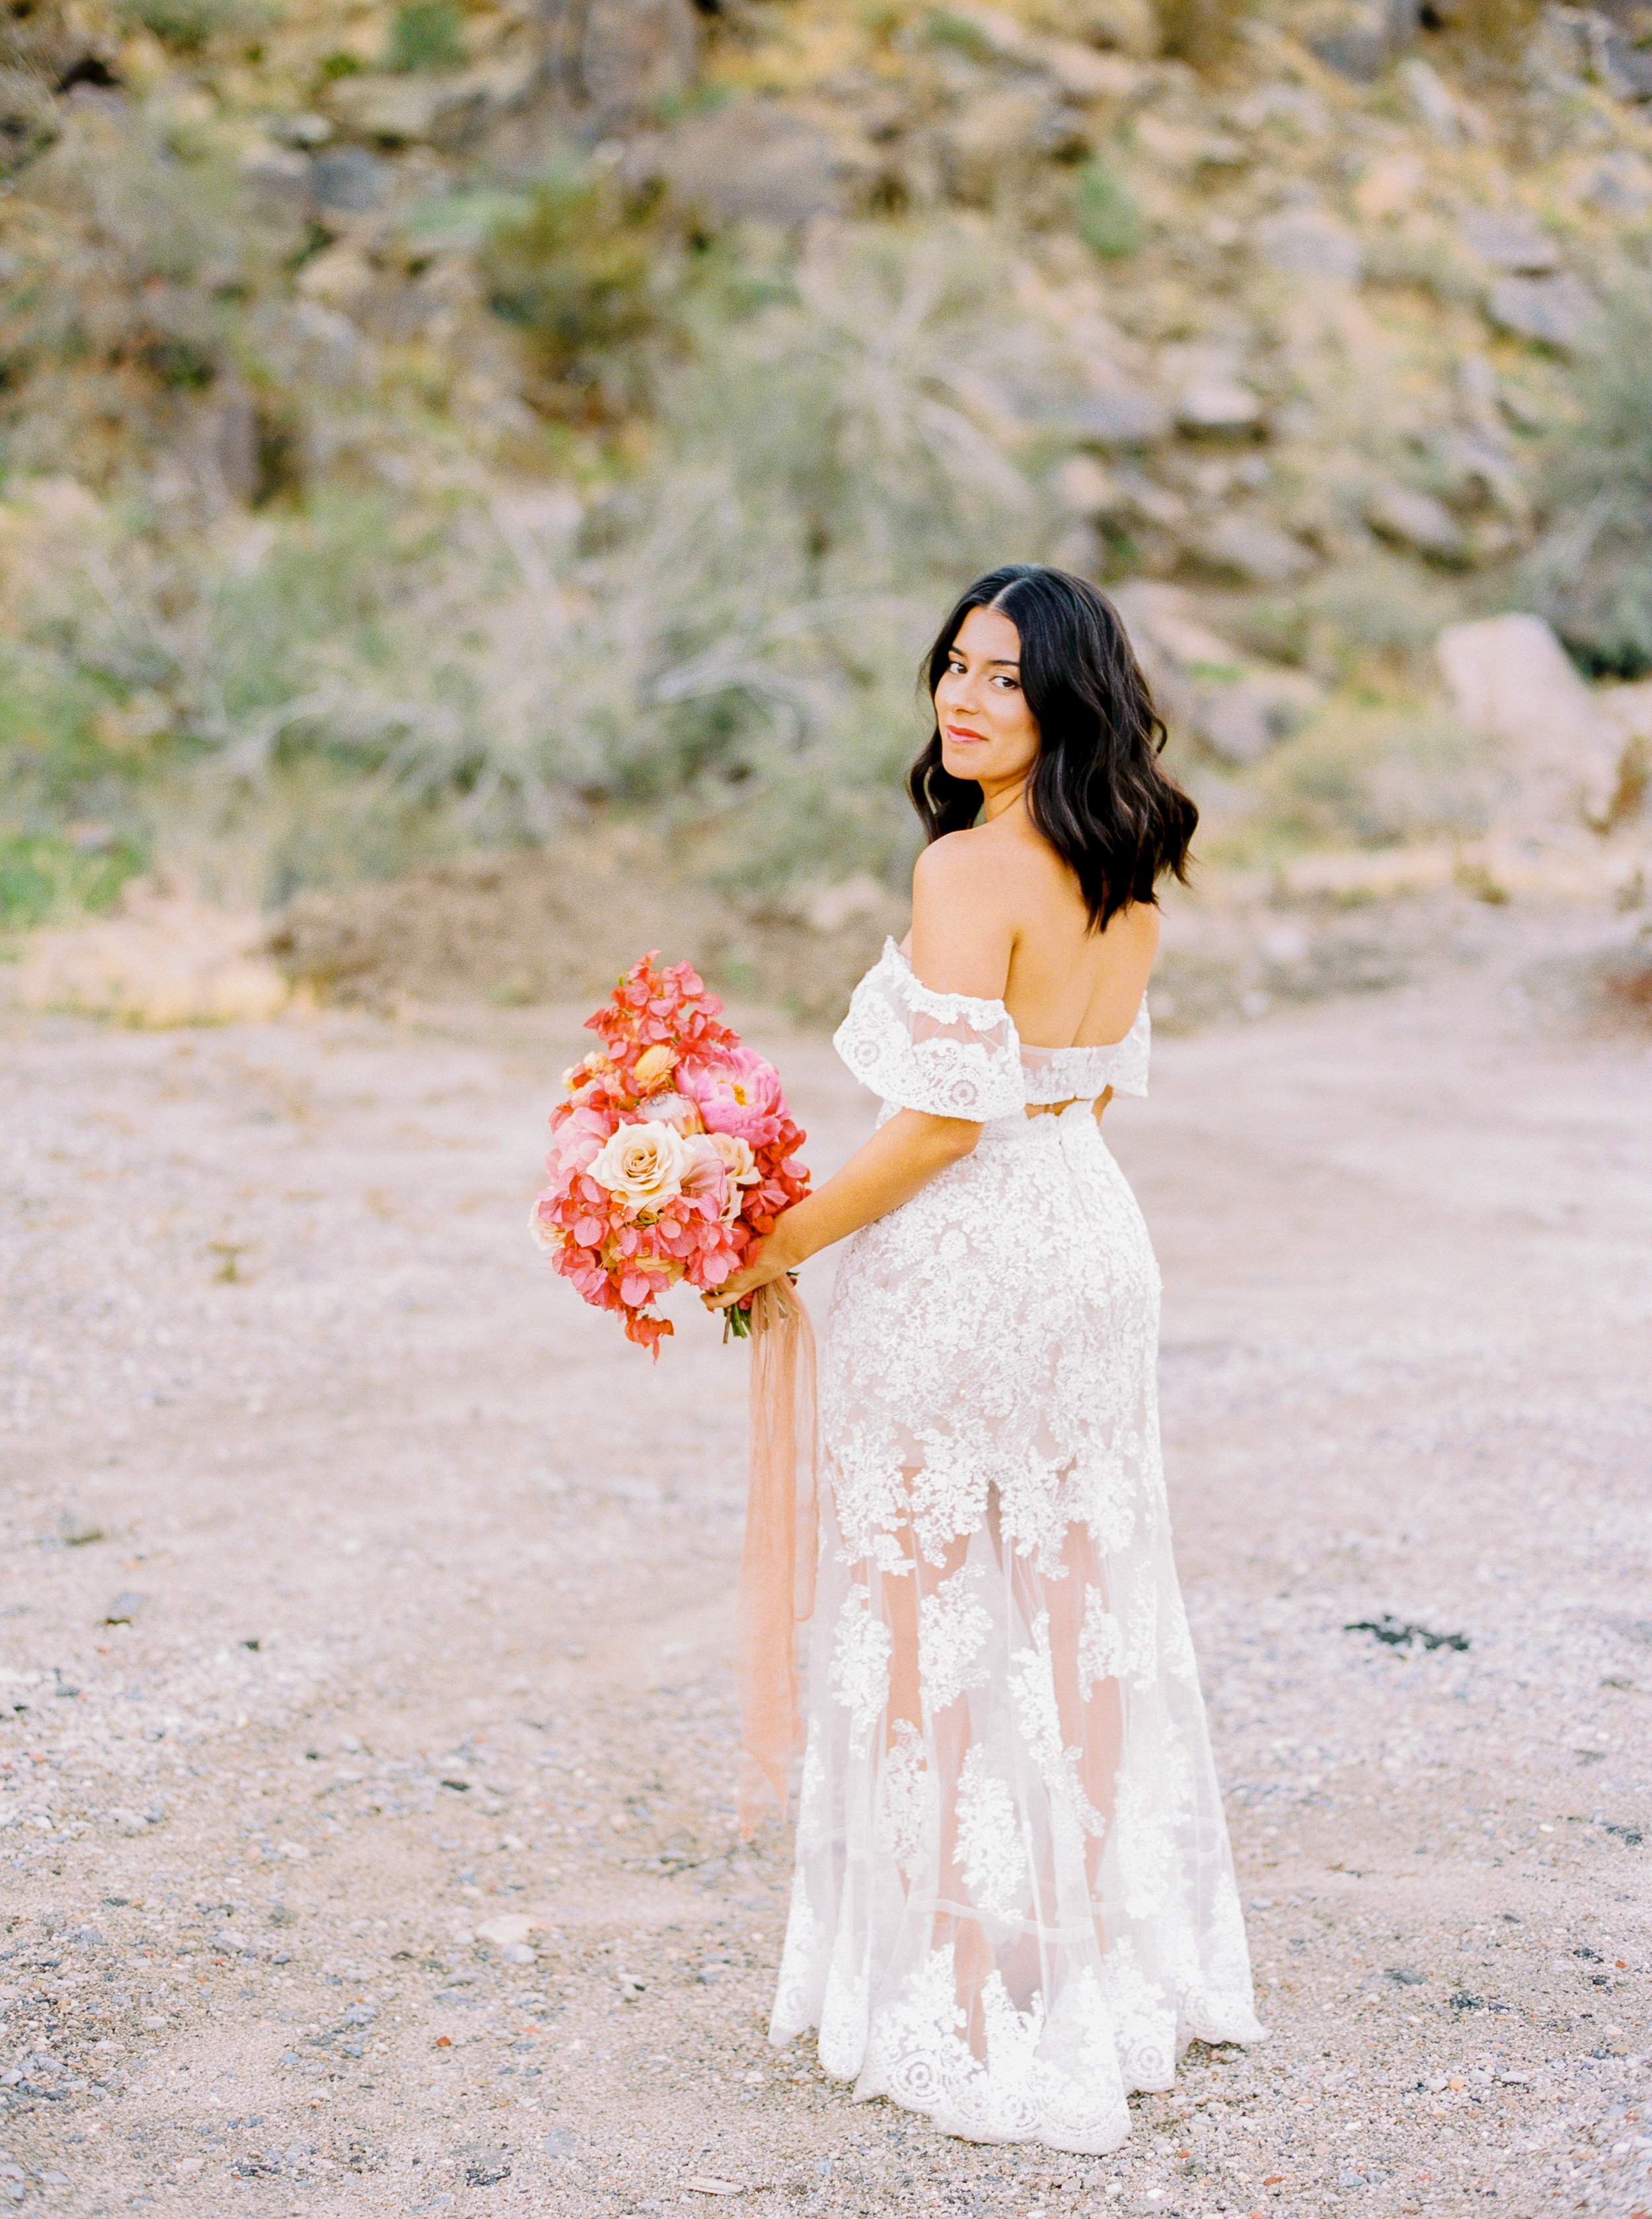 LACE WEDDING DRESS BOUGAINVILLEA BOUQUET